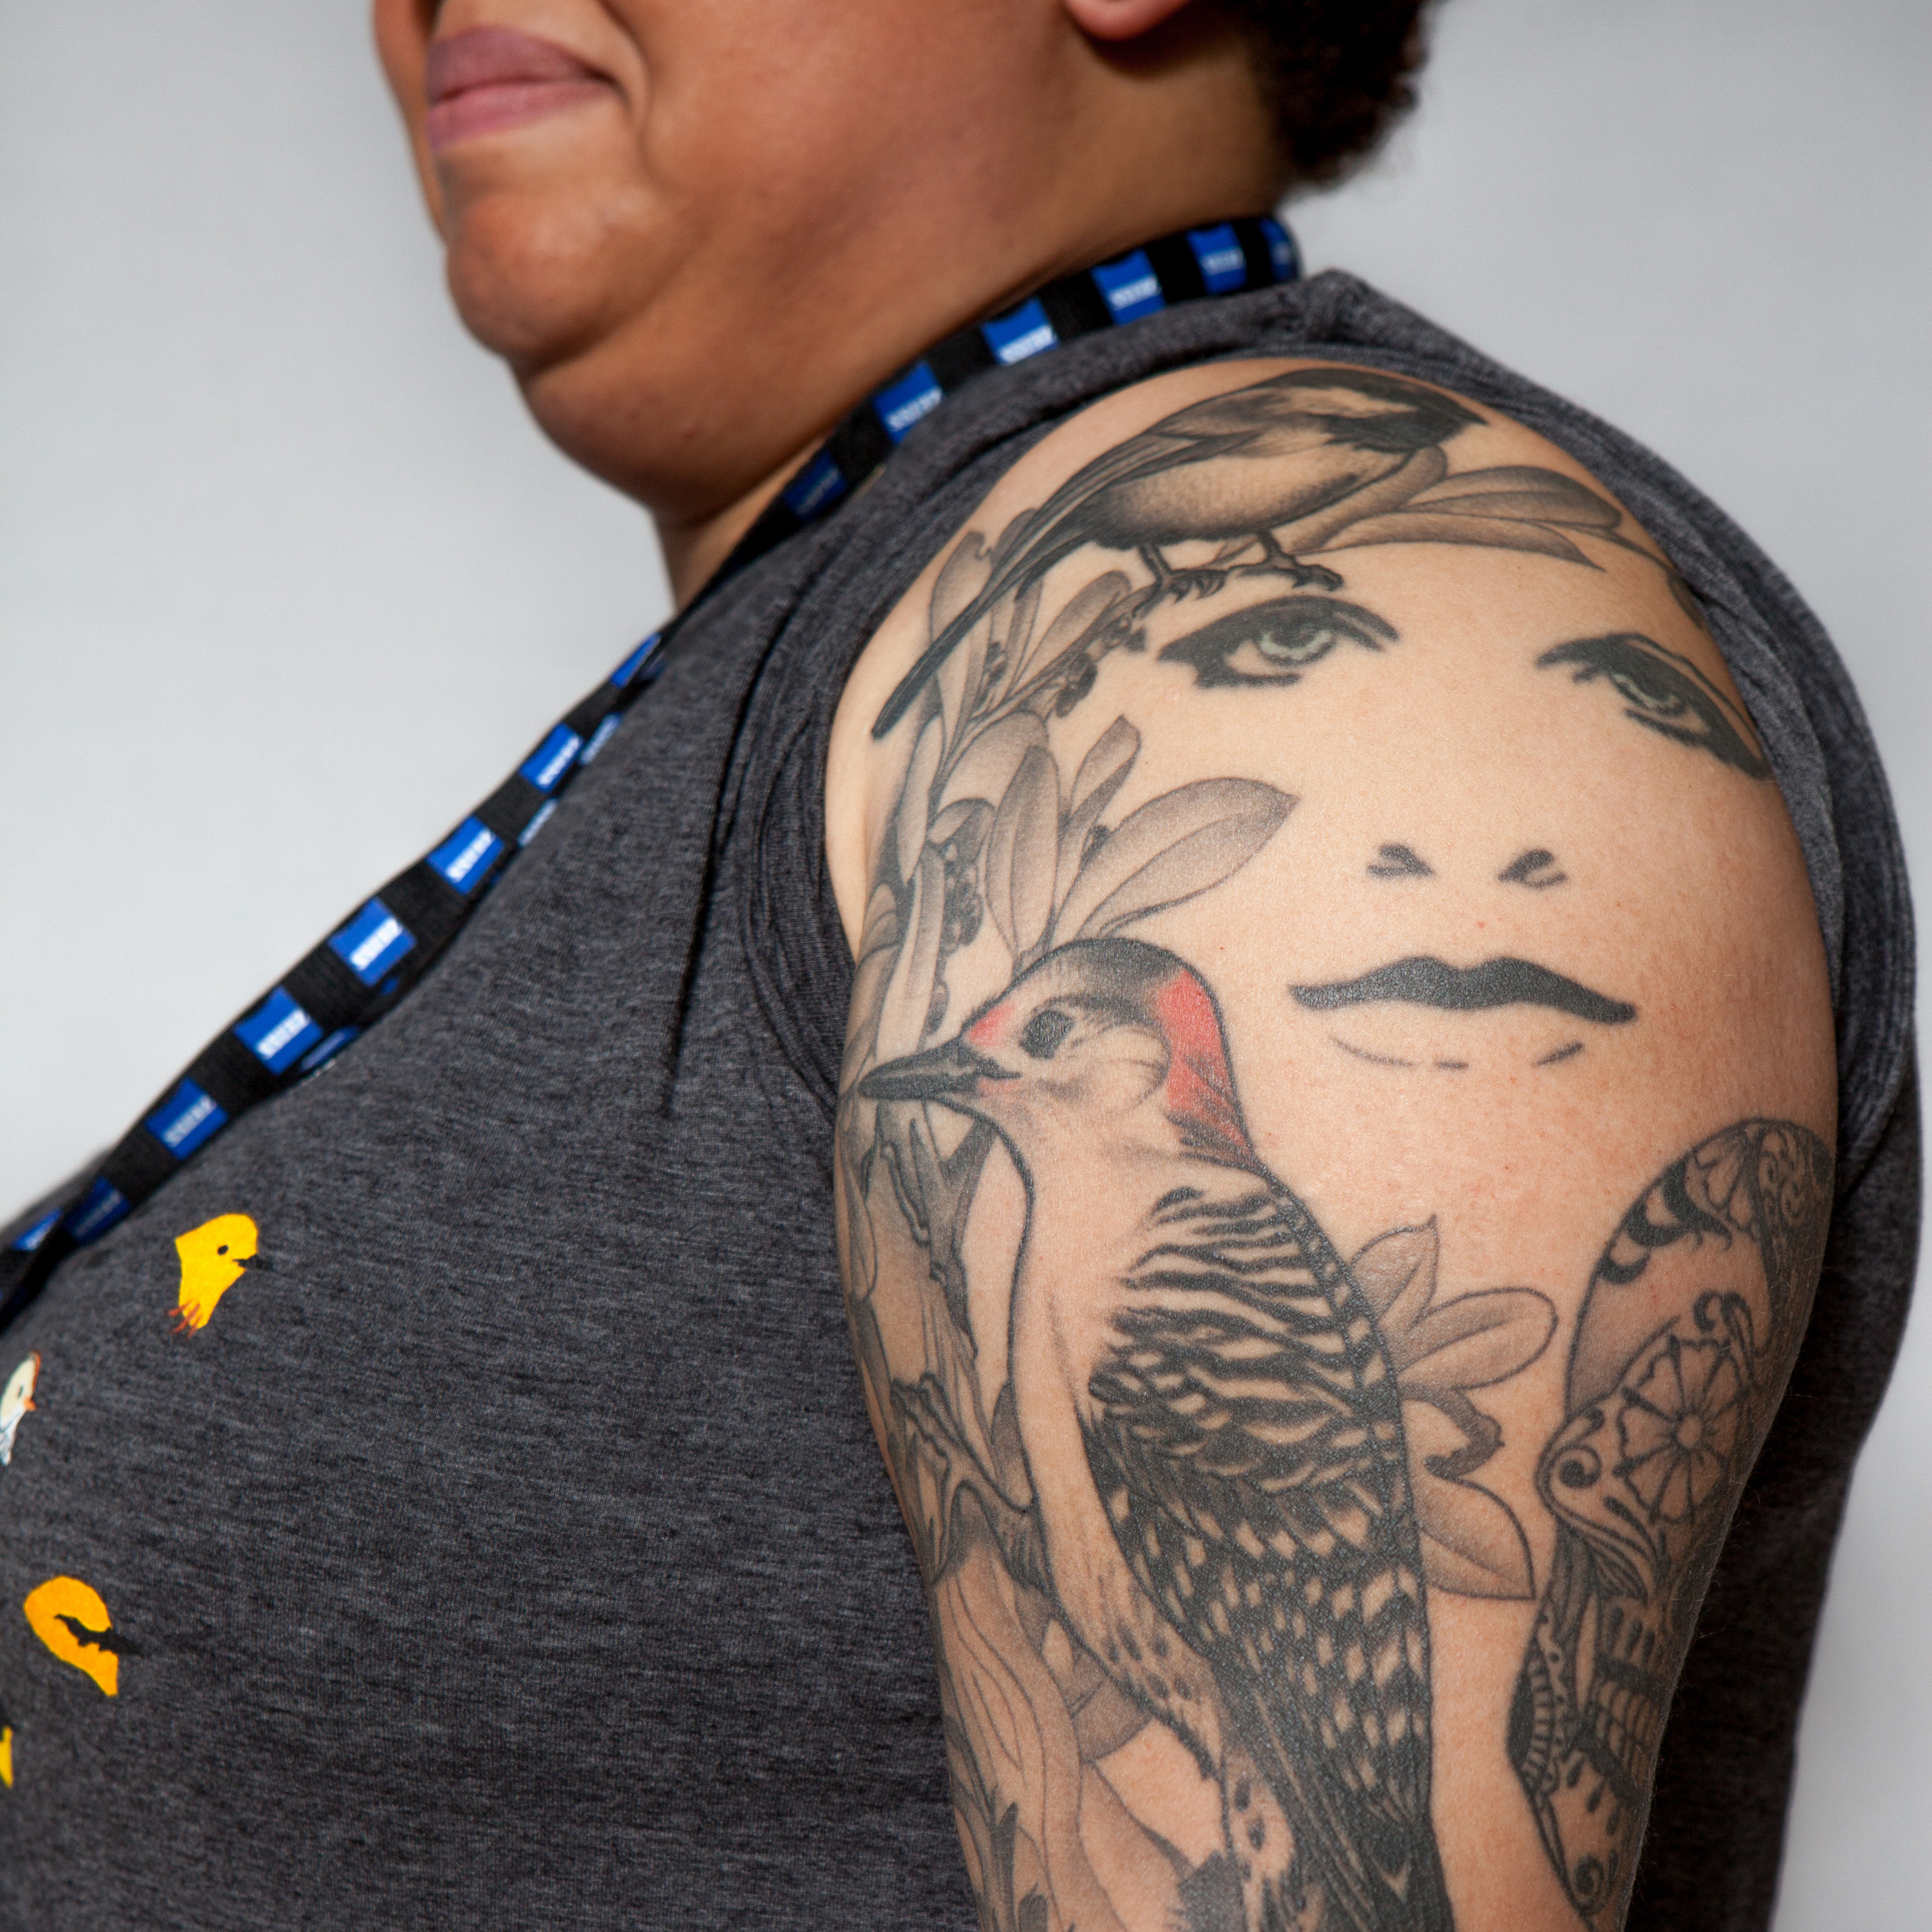 Tattoo that won first place from the 2014 Biggest Week Bird Tattoo Contest. Camilla Cerea/Audubon